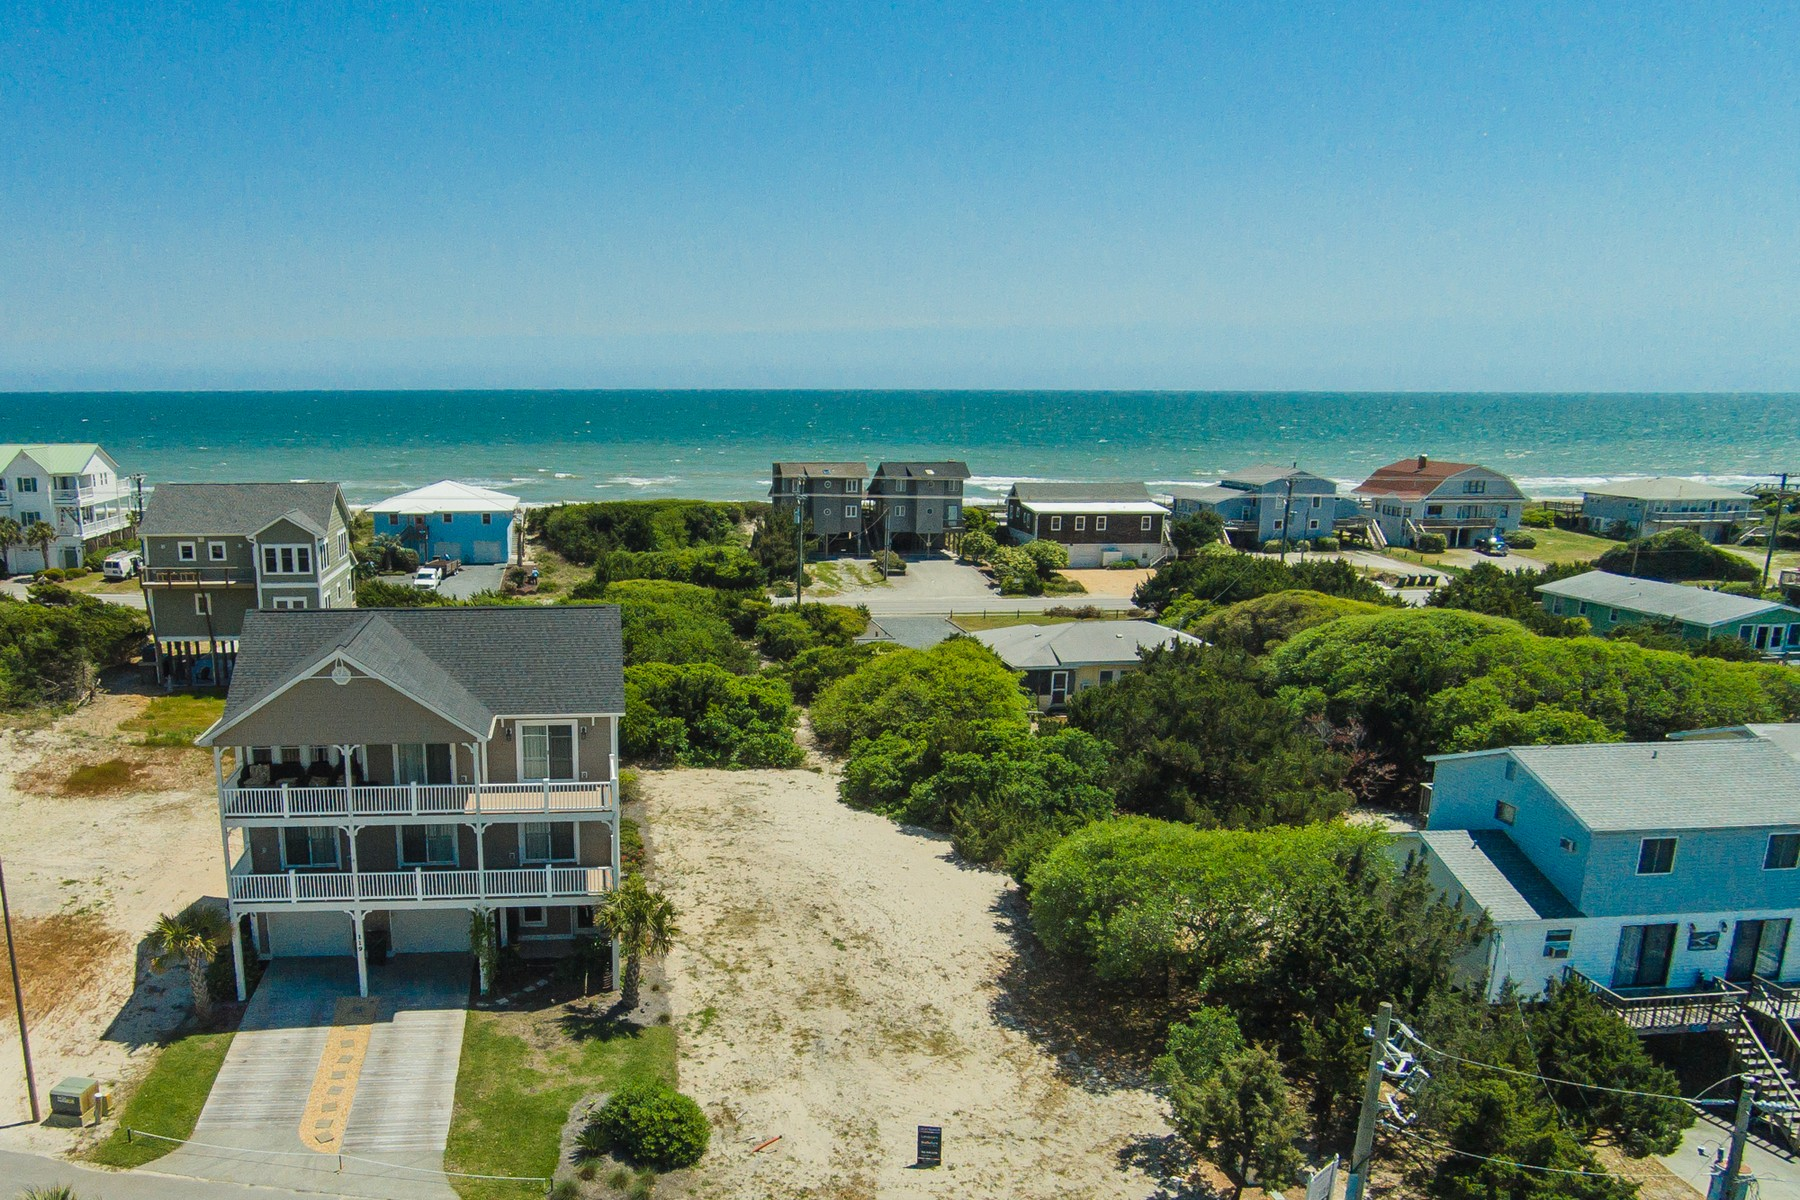 أراضي للـ Sale في Topsail Island Lot With Dock 121 Bridgers Ave., Topsail Beach, North Carolina, 28445 United States